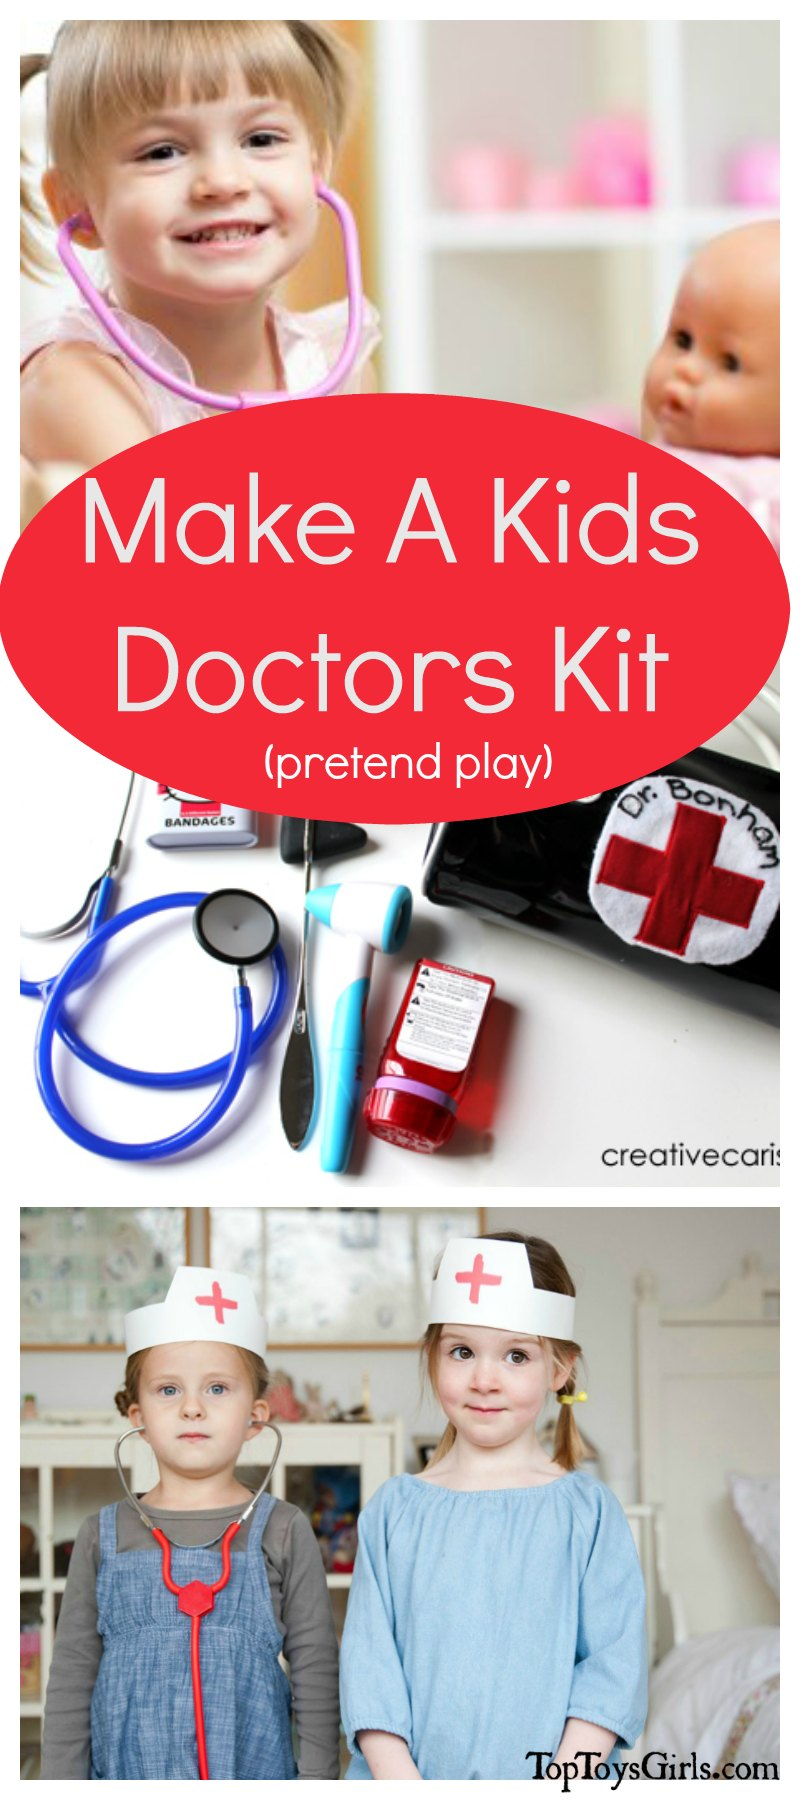 Make A Kids Doctors Kit...Just for fun!